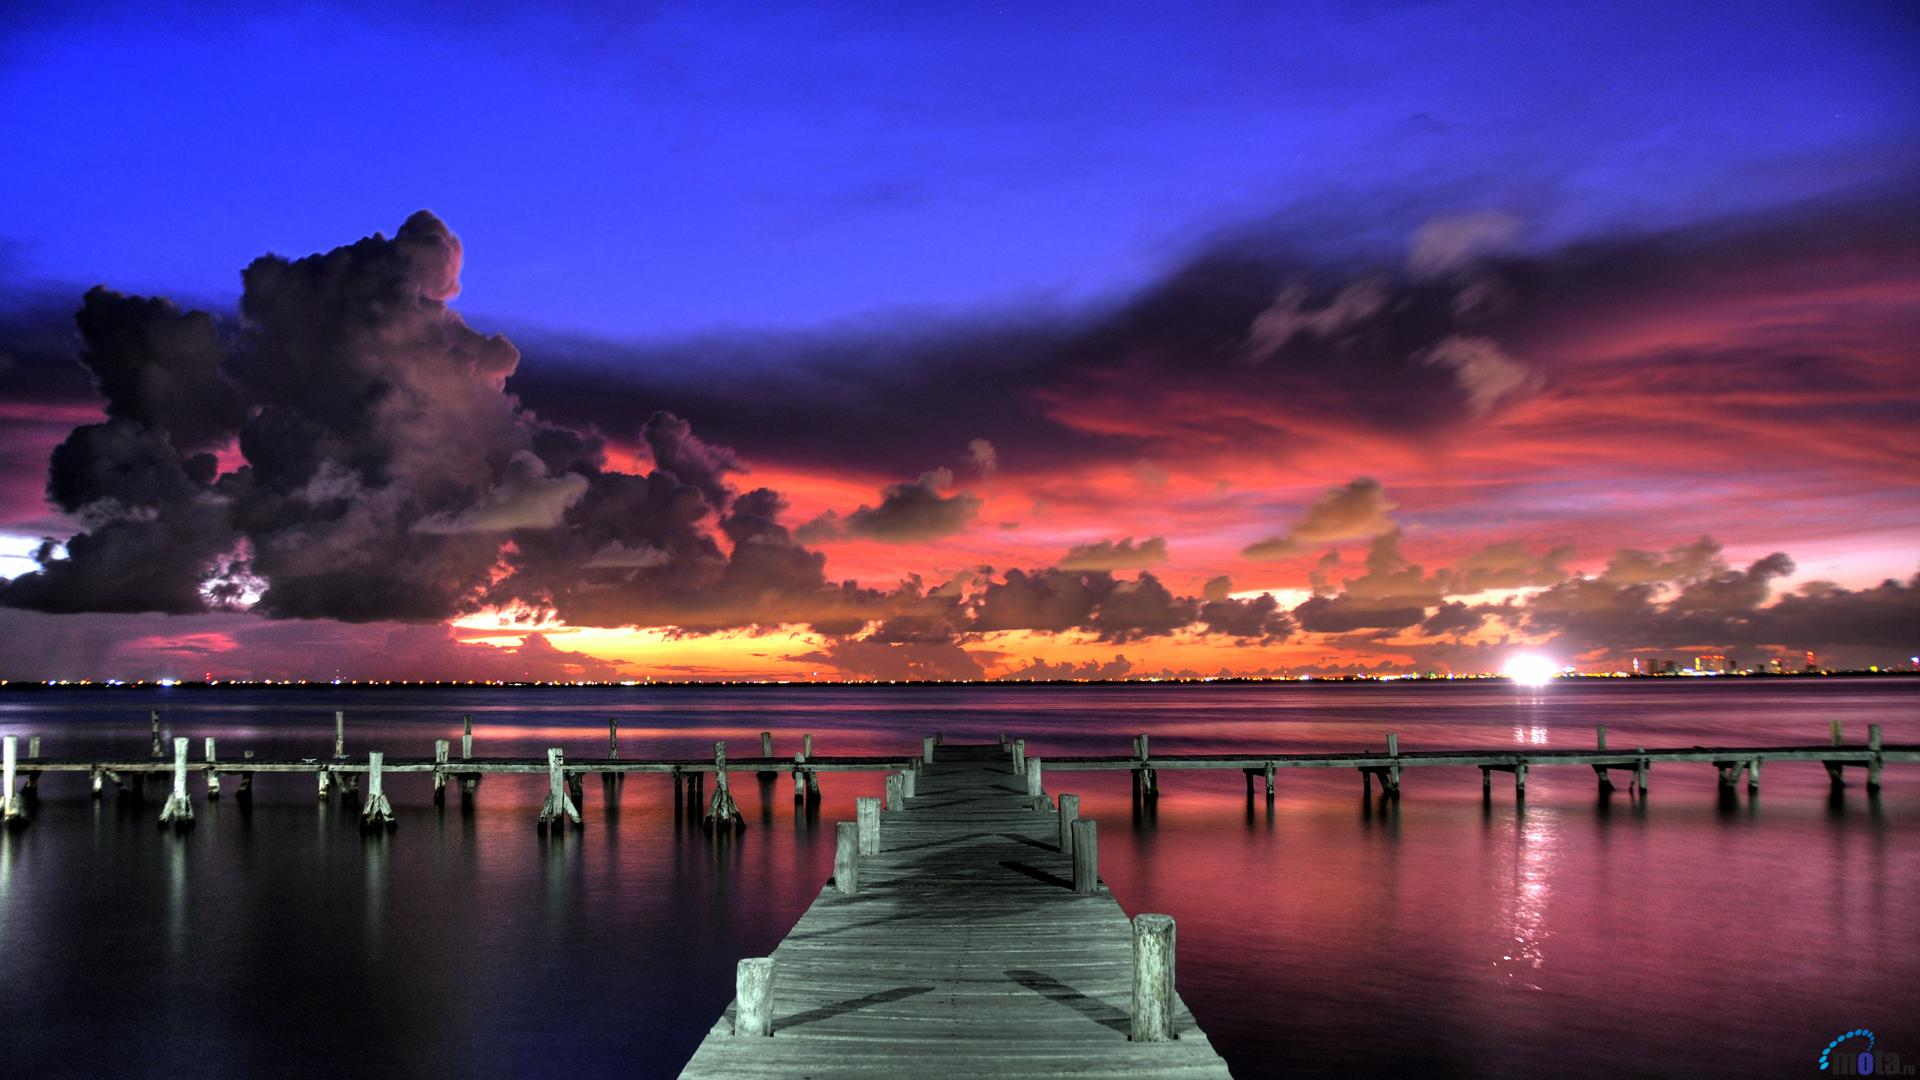 wallpaper bright tropical sunset 1920 x 1080 hdtv 1080p desktop